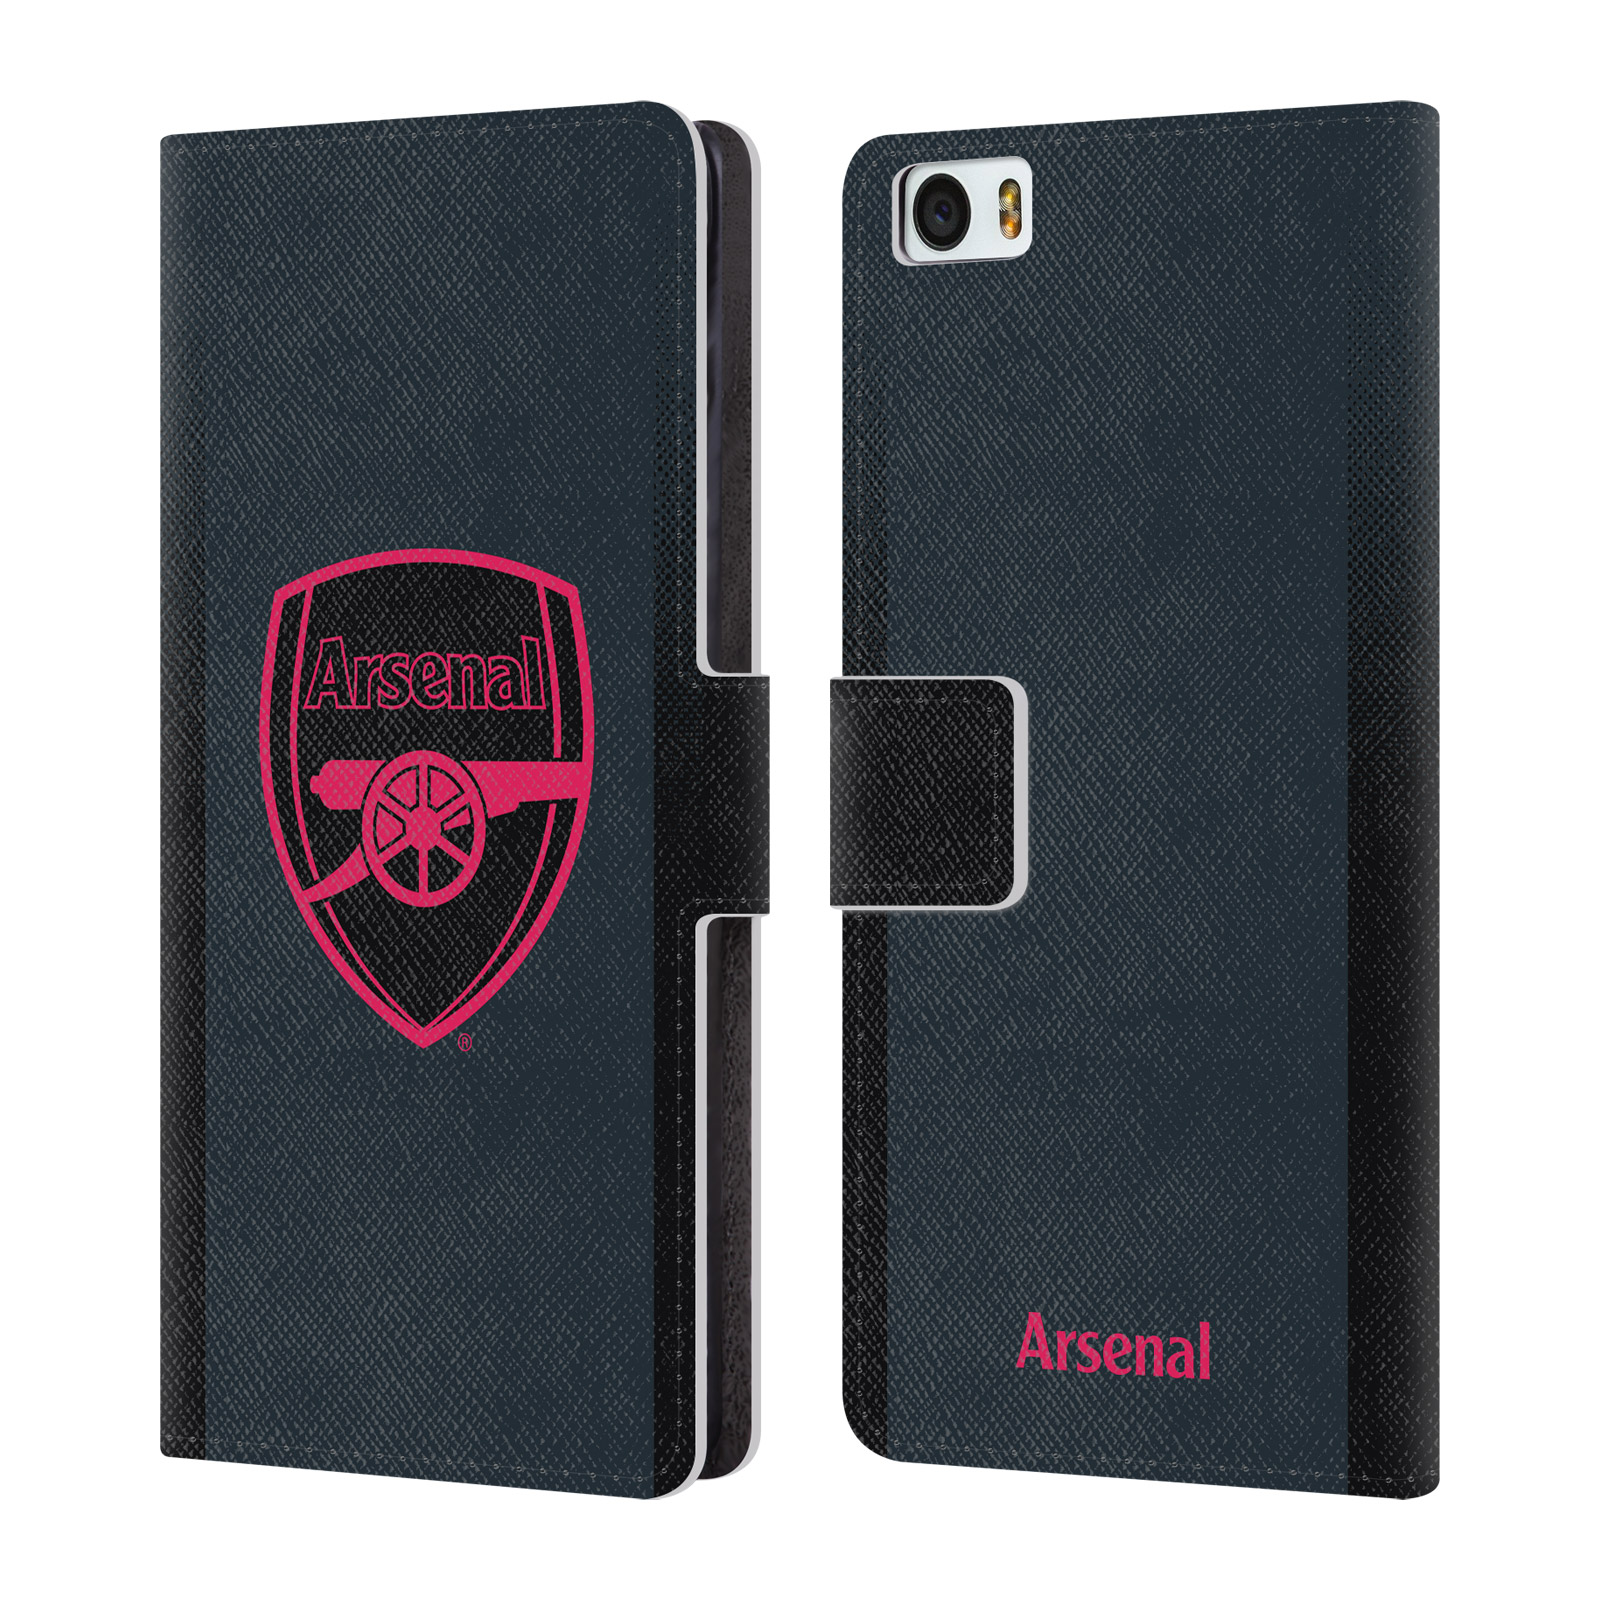 OFFICIAL-ARSENAL-FC-2017-18-CREST-KIT-LEATHER-BOOK-WALLET-CASE-FOR-XIAOMI-PHONES